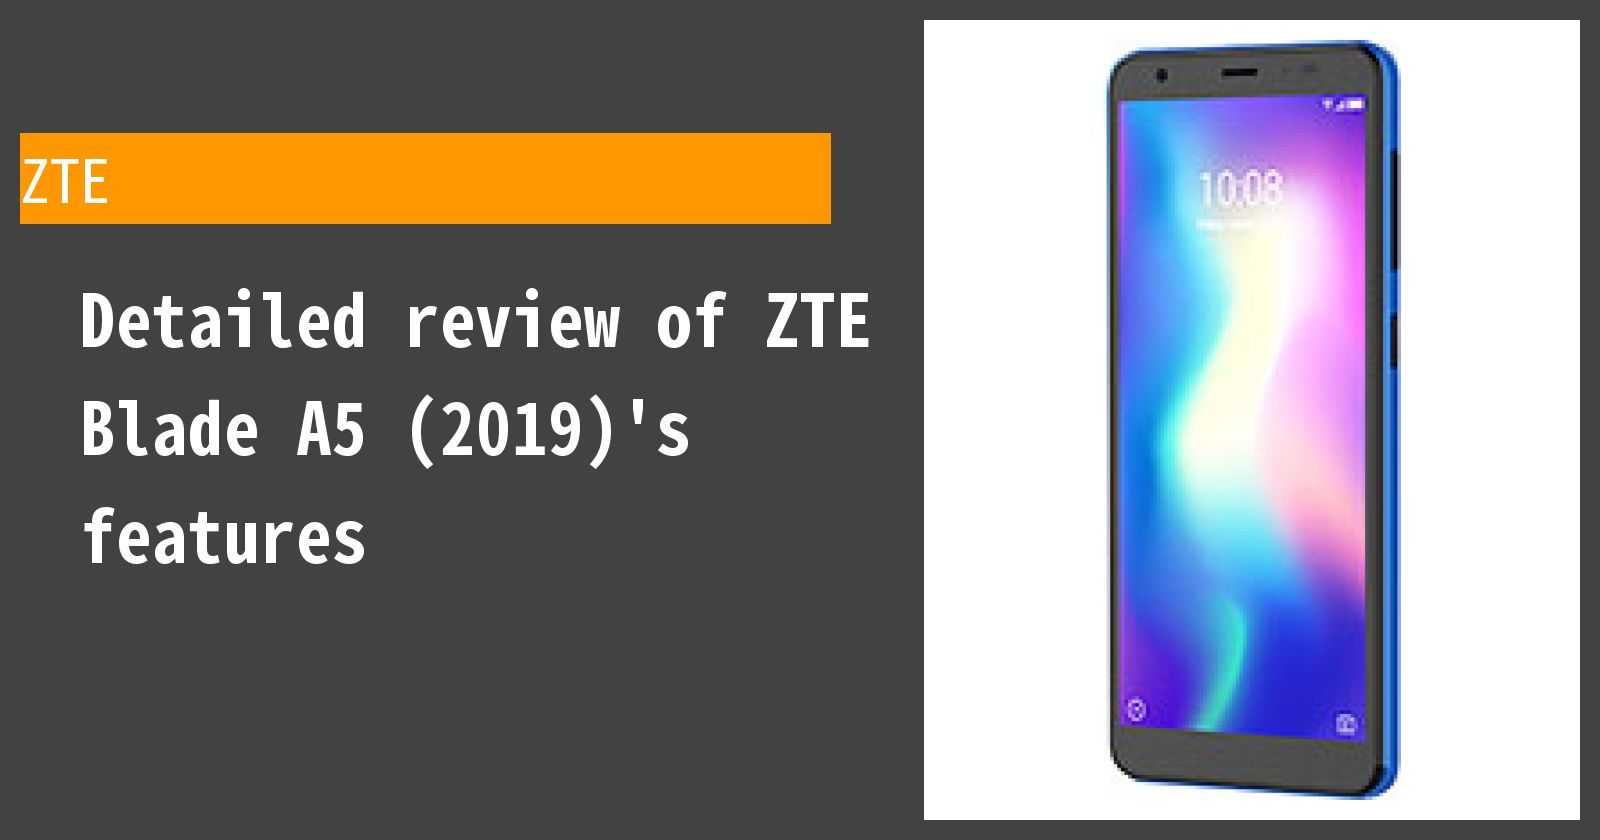 Detailed review of ZTE Blade A5 (2019)'s features